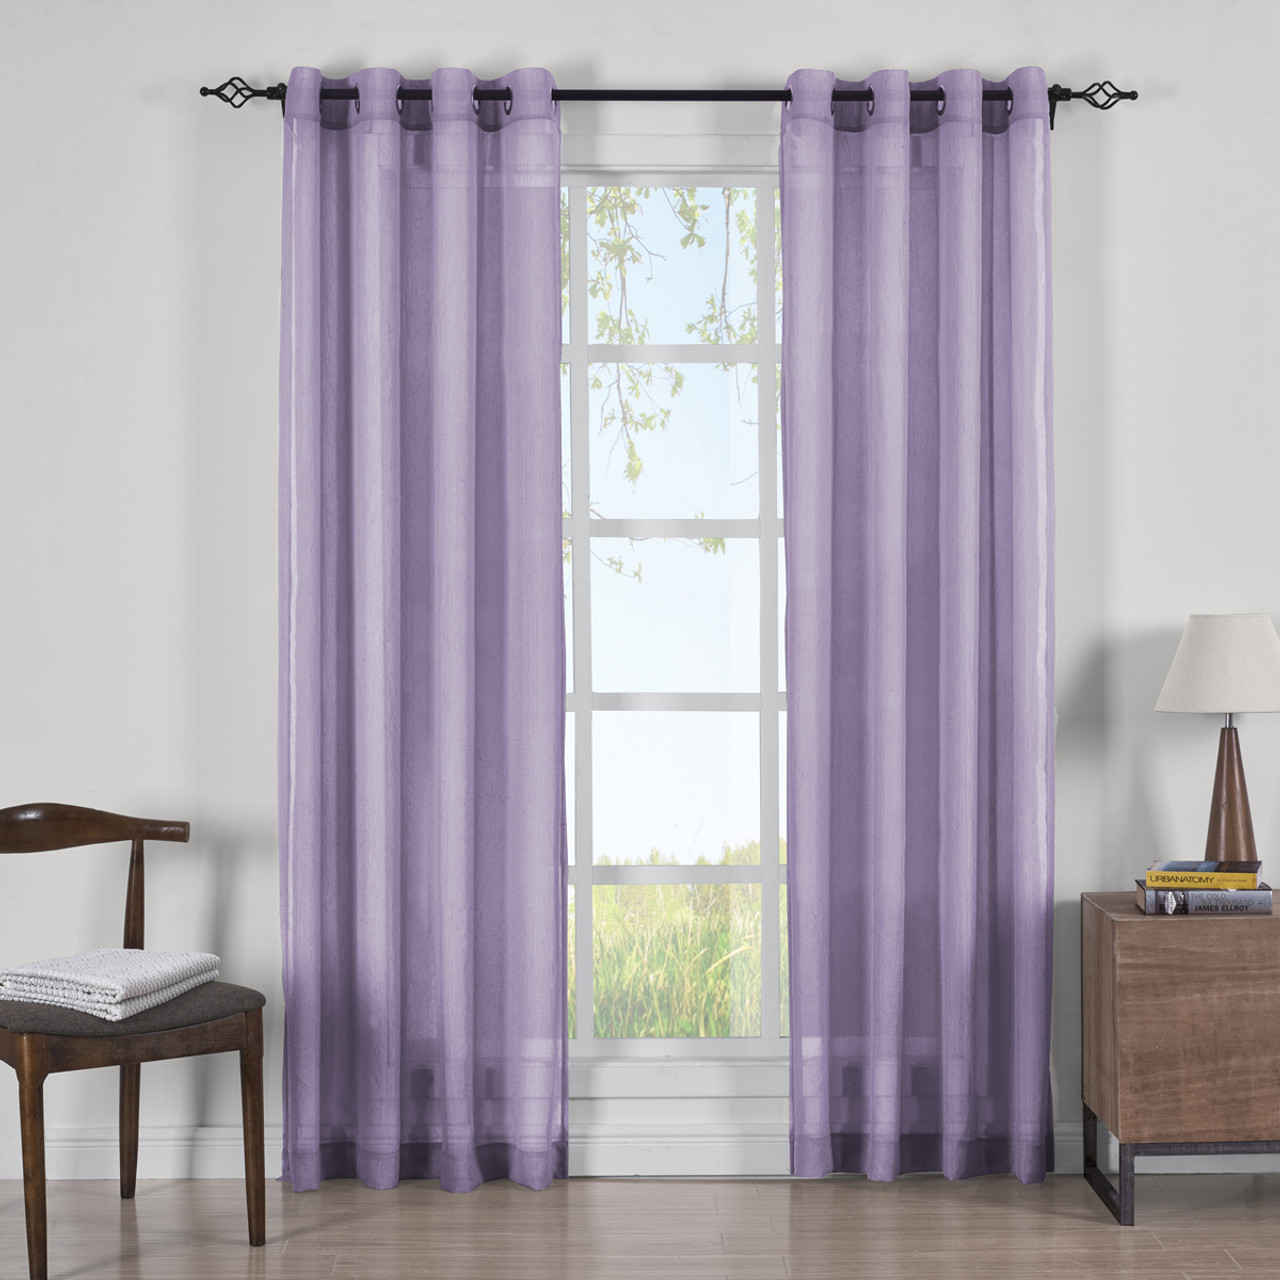 Lavender Sheer Curtains Abri Grommet Crushed Sheer Curtain Panels Set Of 2